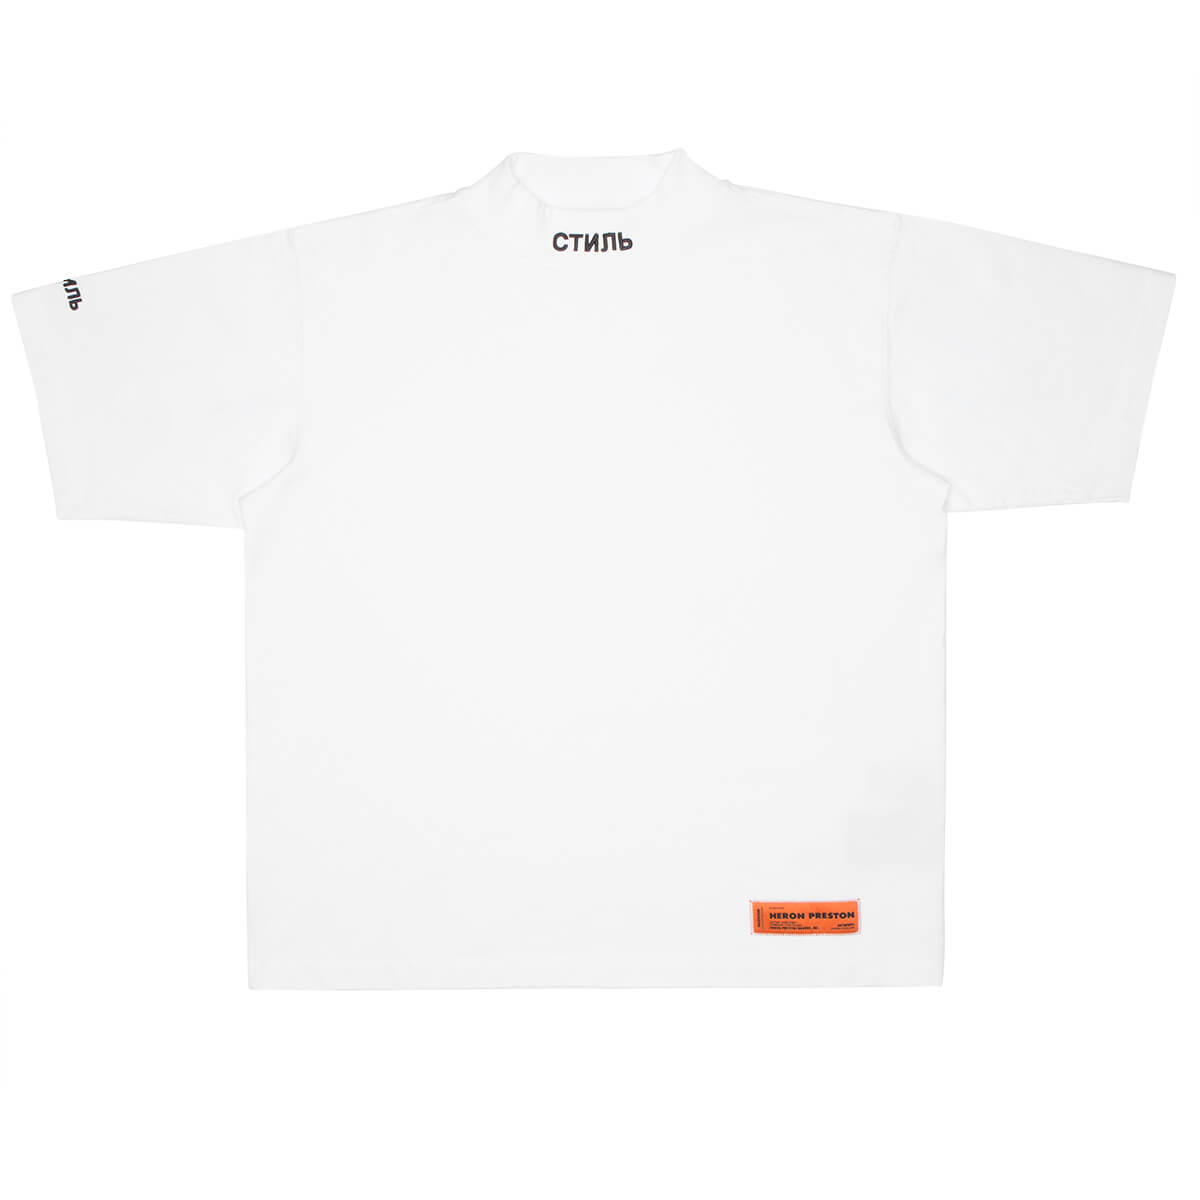 Heron Preston Cottons CTNMB TURTLENECK SS TEE